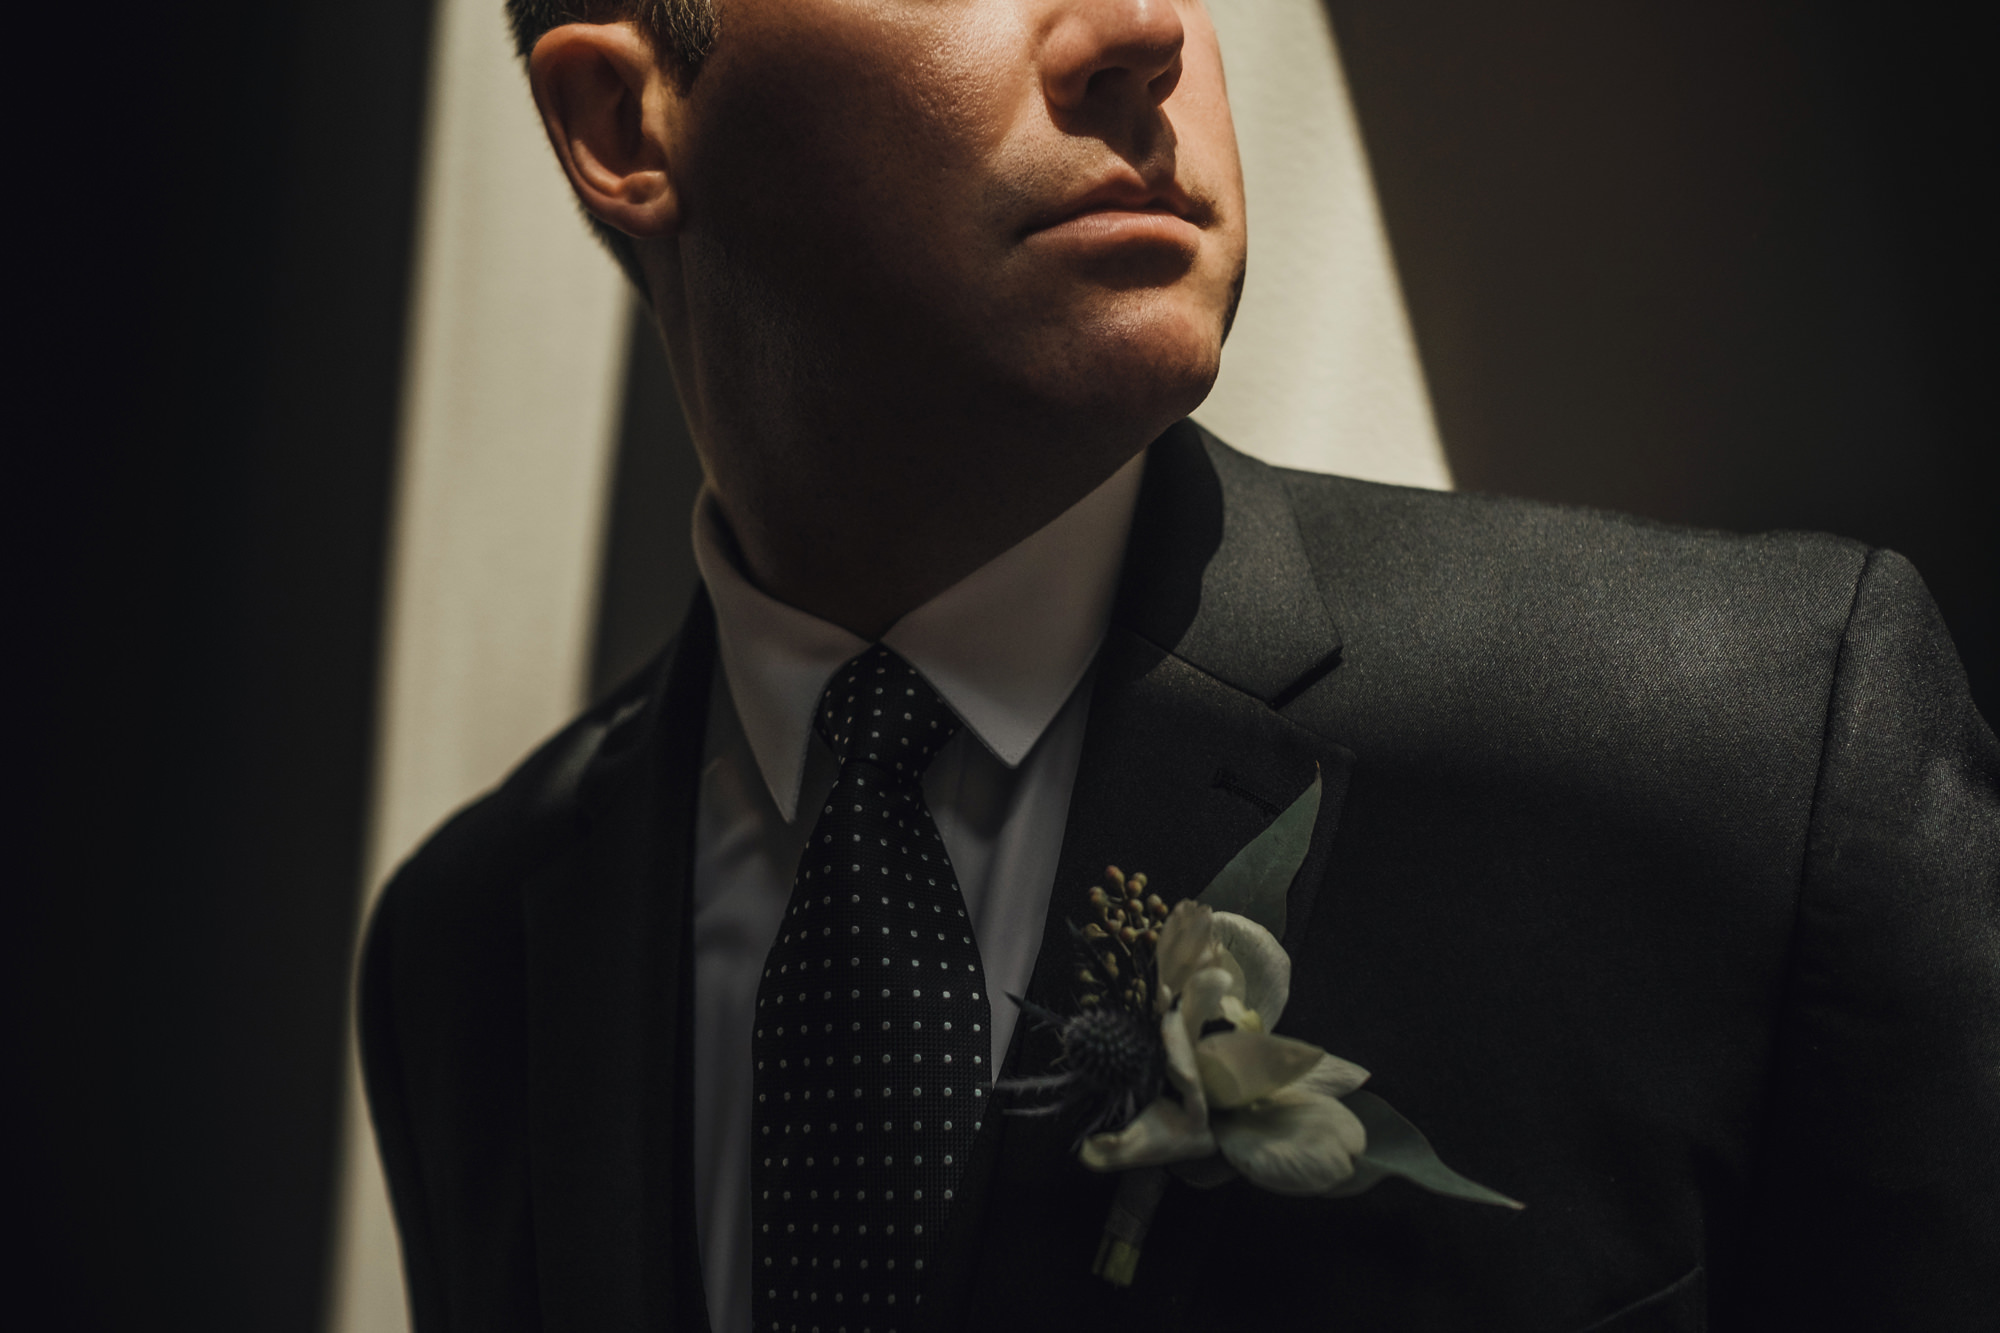 groom close up with boutonniere- photo by Chrisman Studios, charleston, restoration